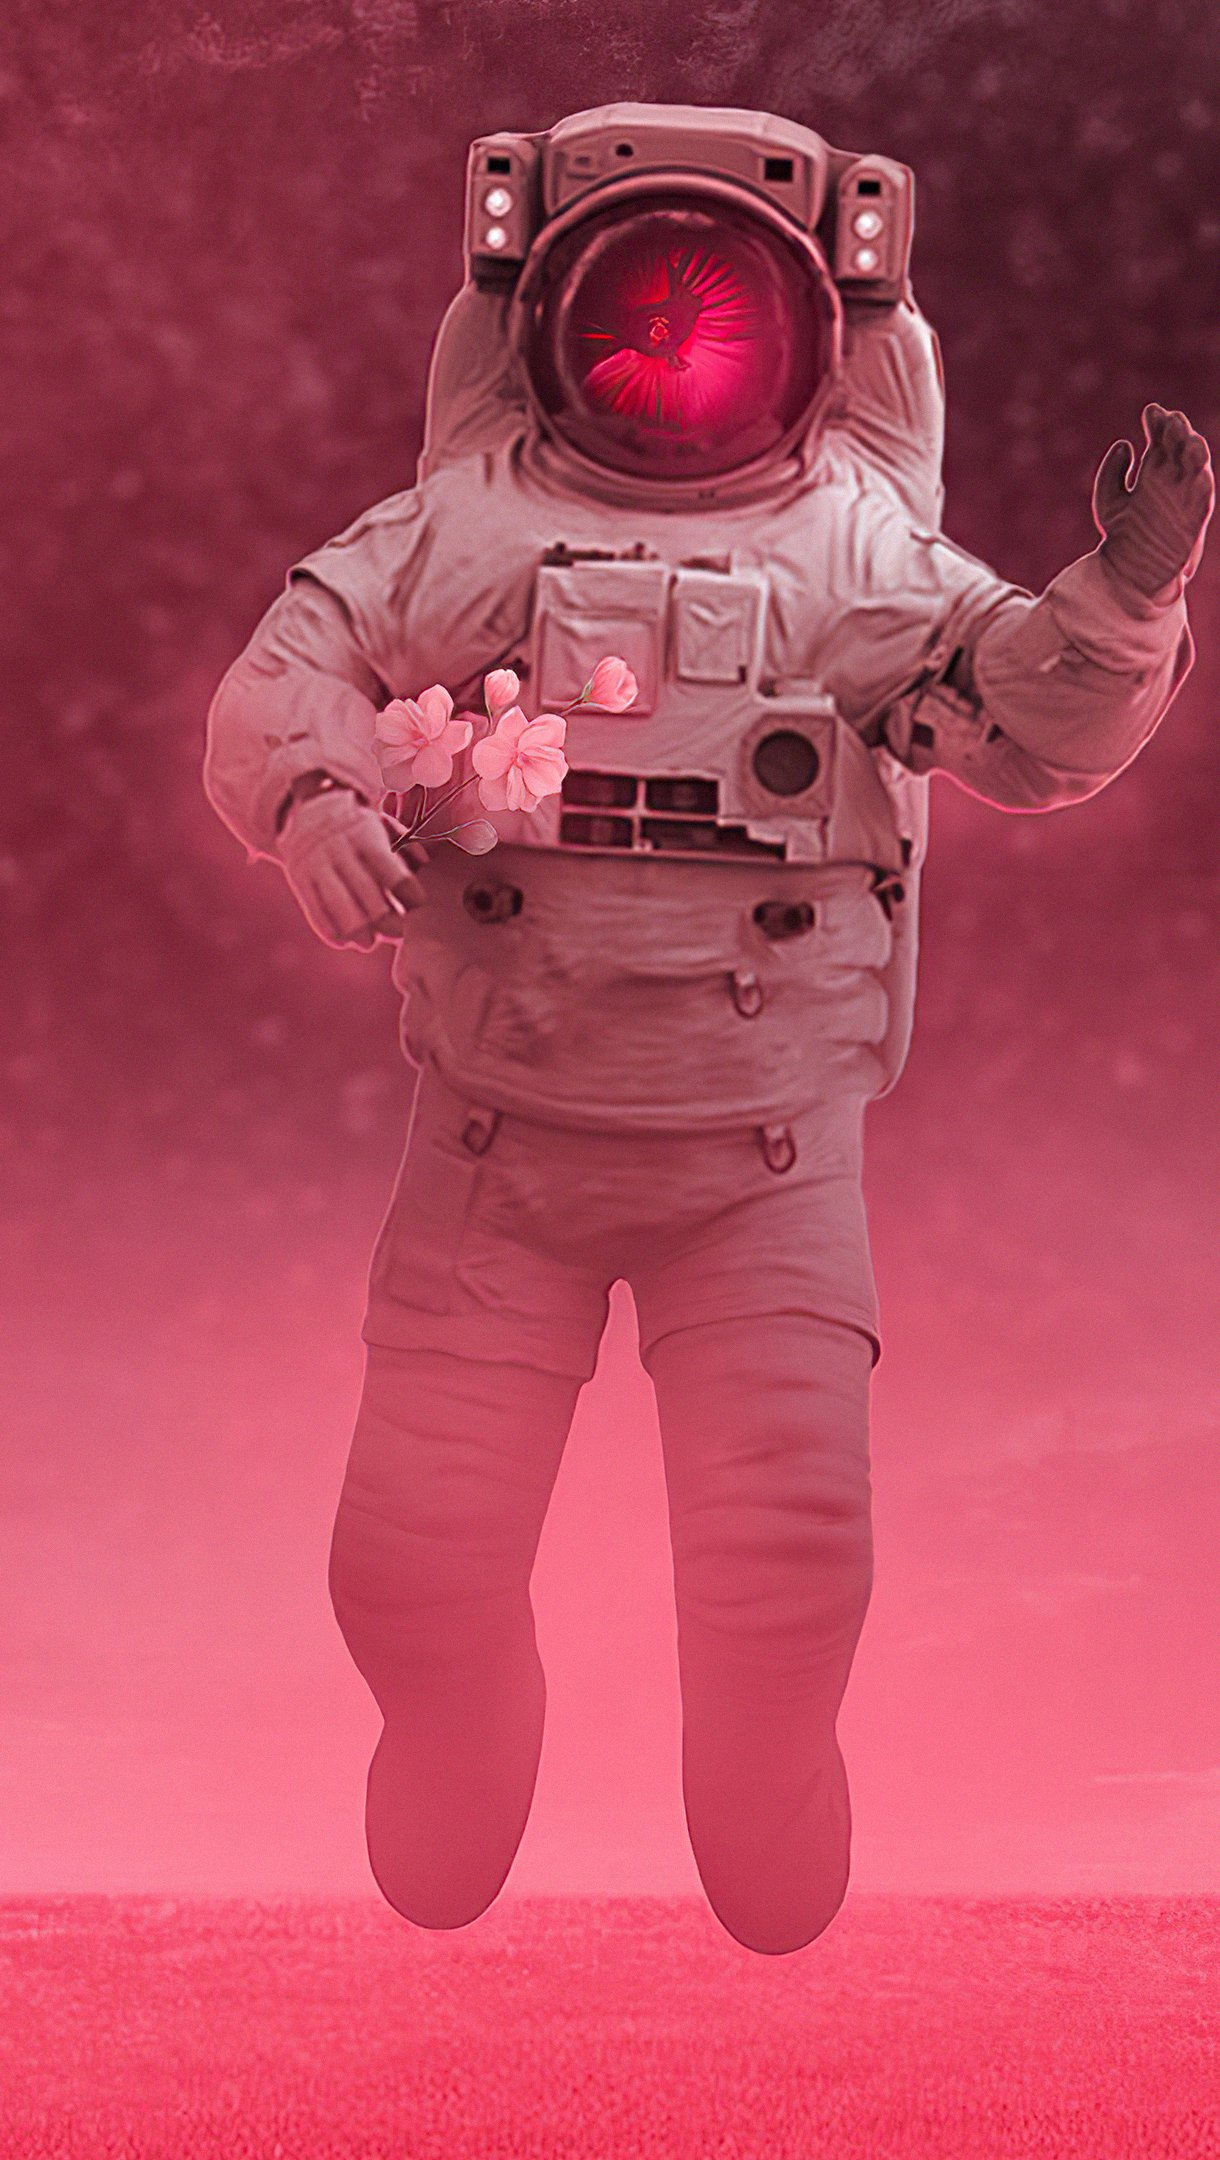 Wallpaper Astronaut floating in space Vertical